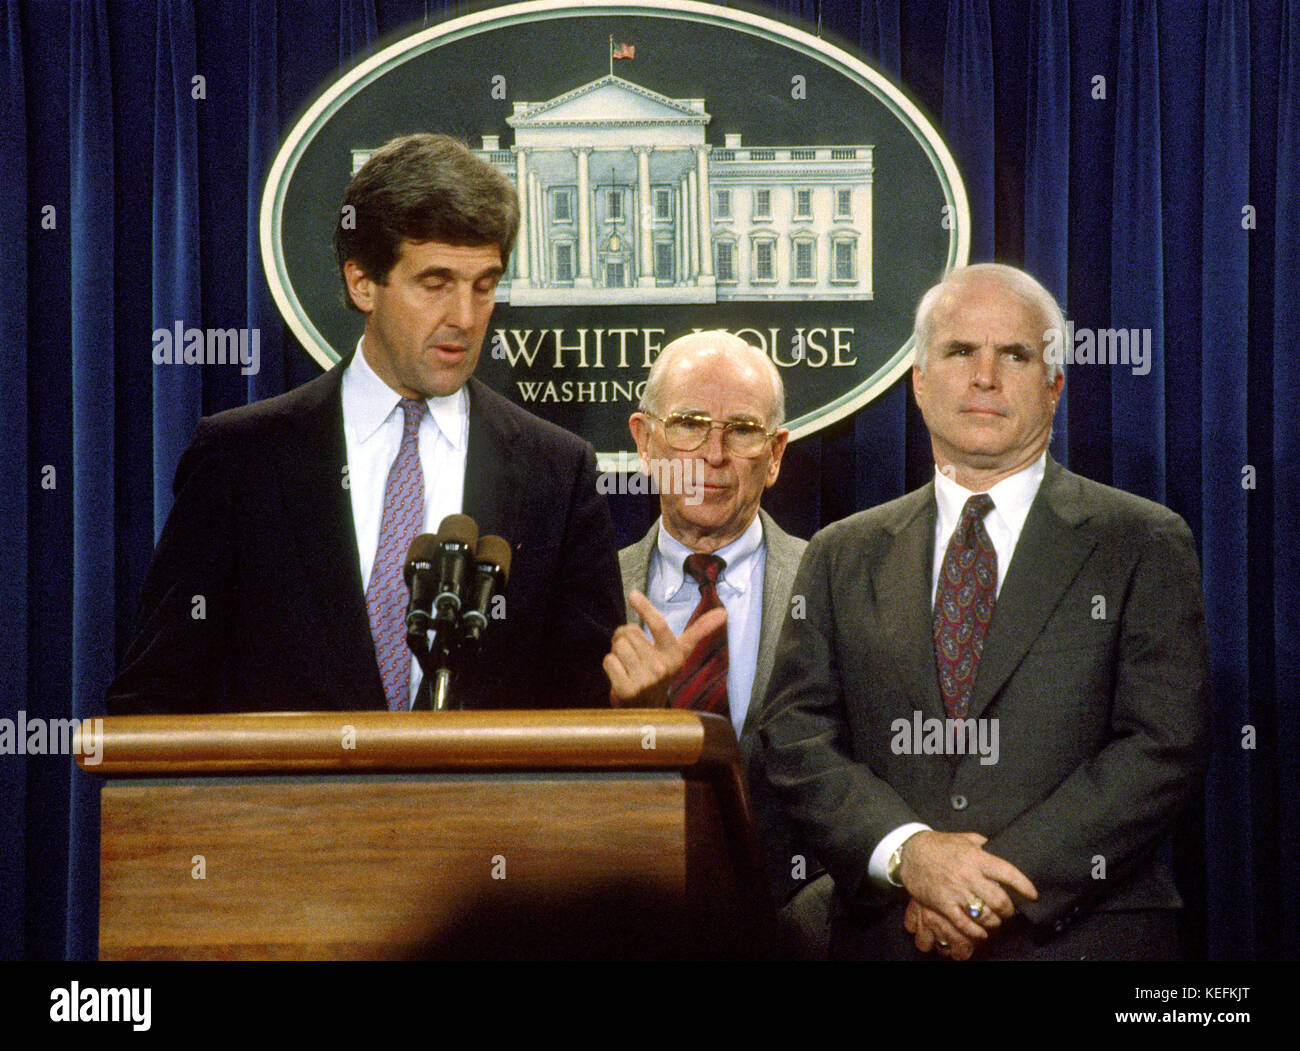 Washington, DC - (FILE) -- United States Senator John F. Kerry (Democrat of Massachusetts), left, retired United - Stock Image